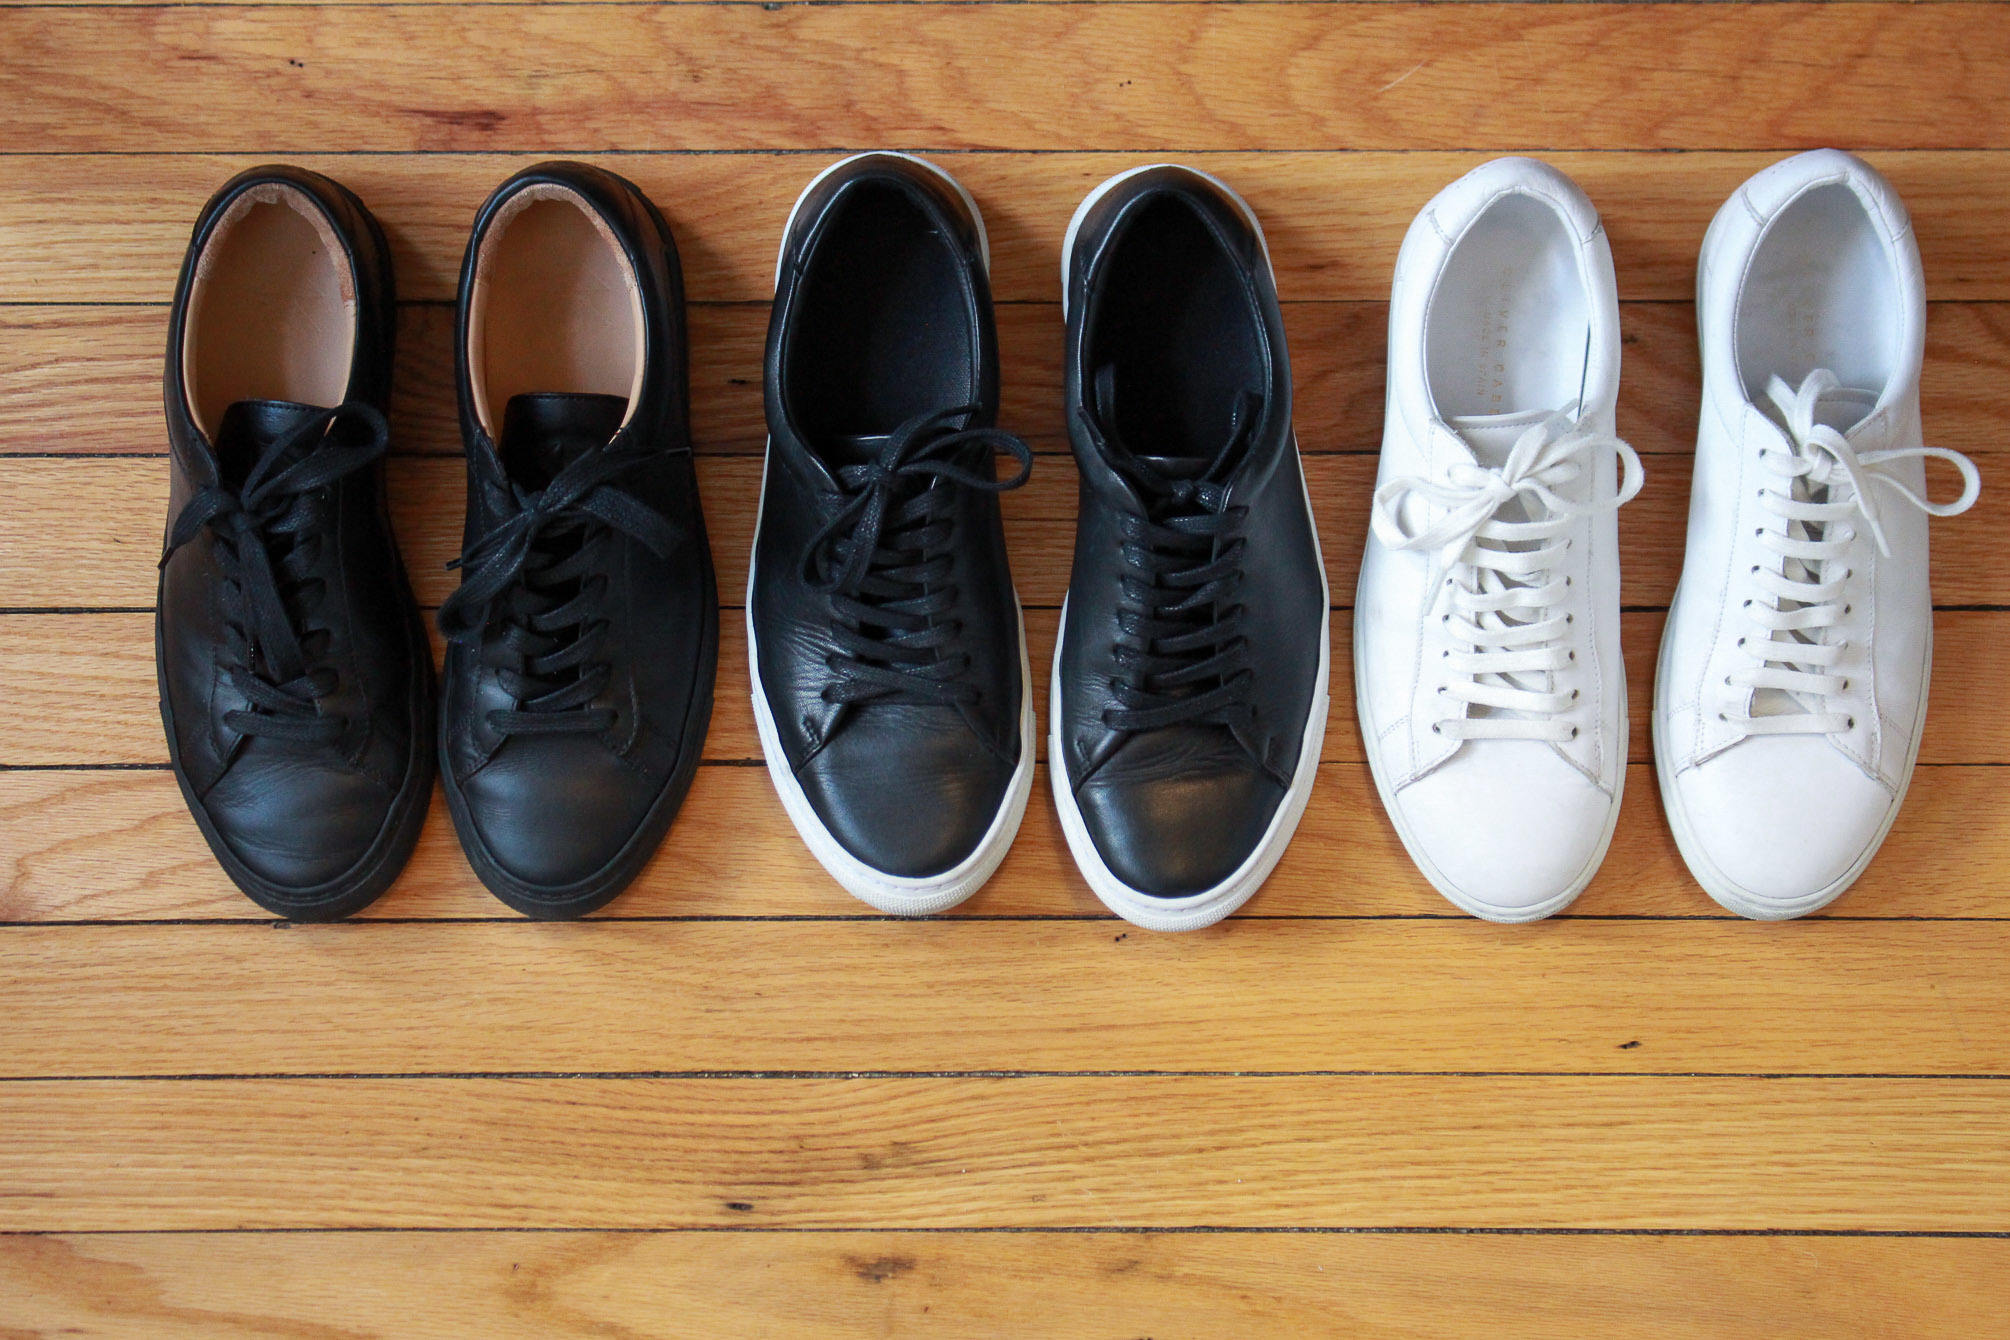 Koio vs. Beckett Simonon vs. Oliver Cabell sneakers